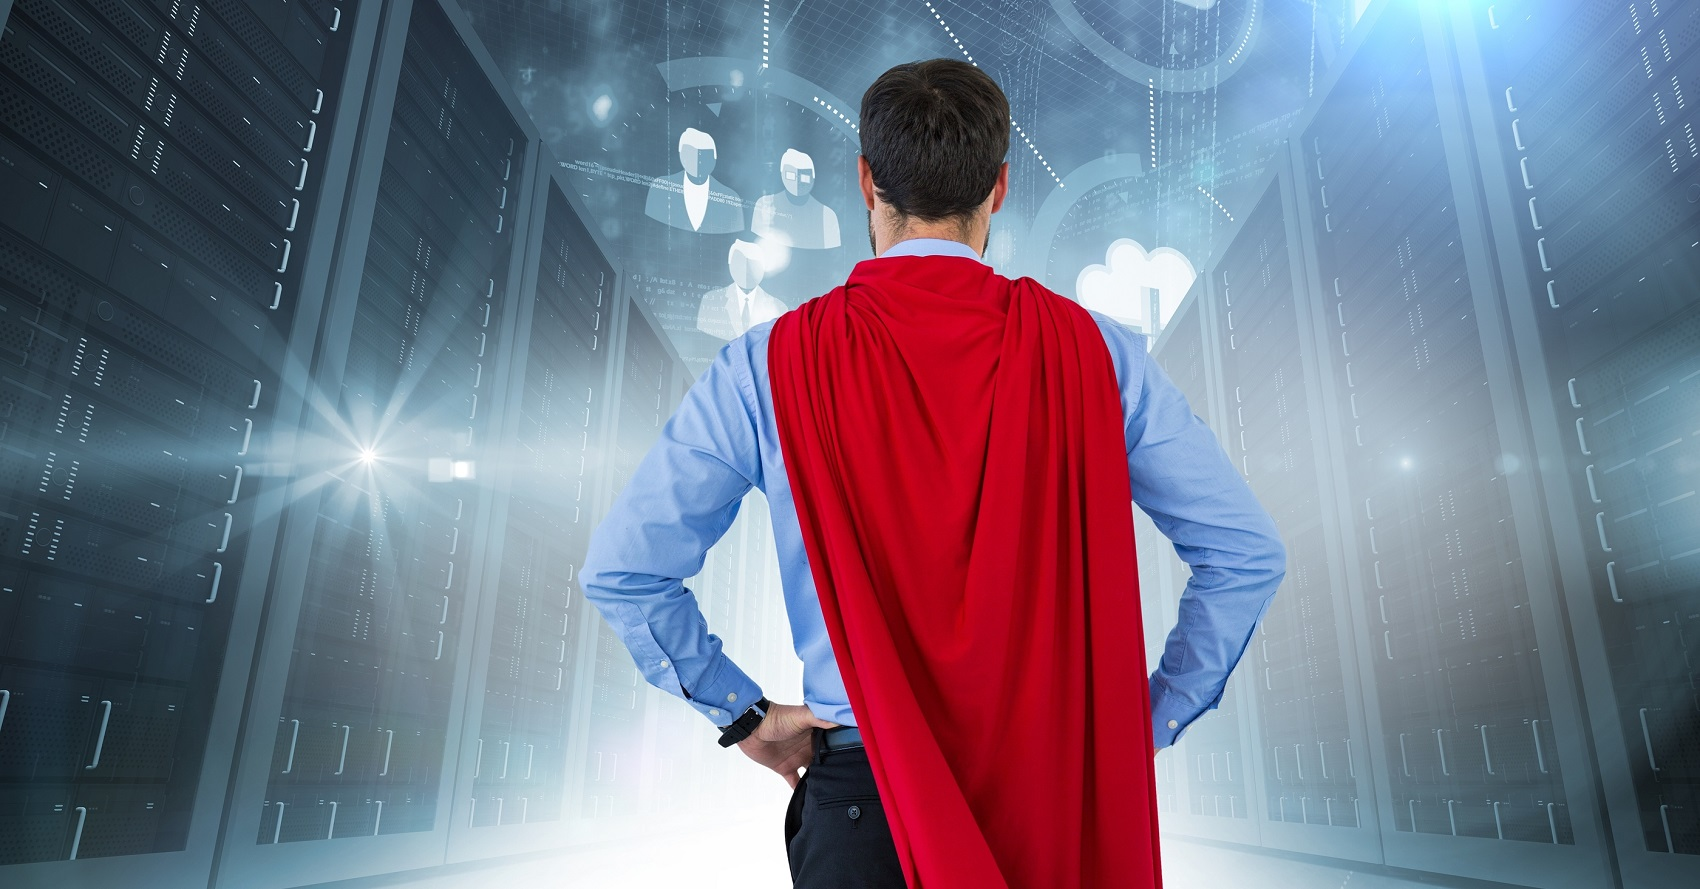 The IT hero's journey – Embracing Cloud Change, Challenges, and Discovery TechNative